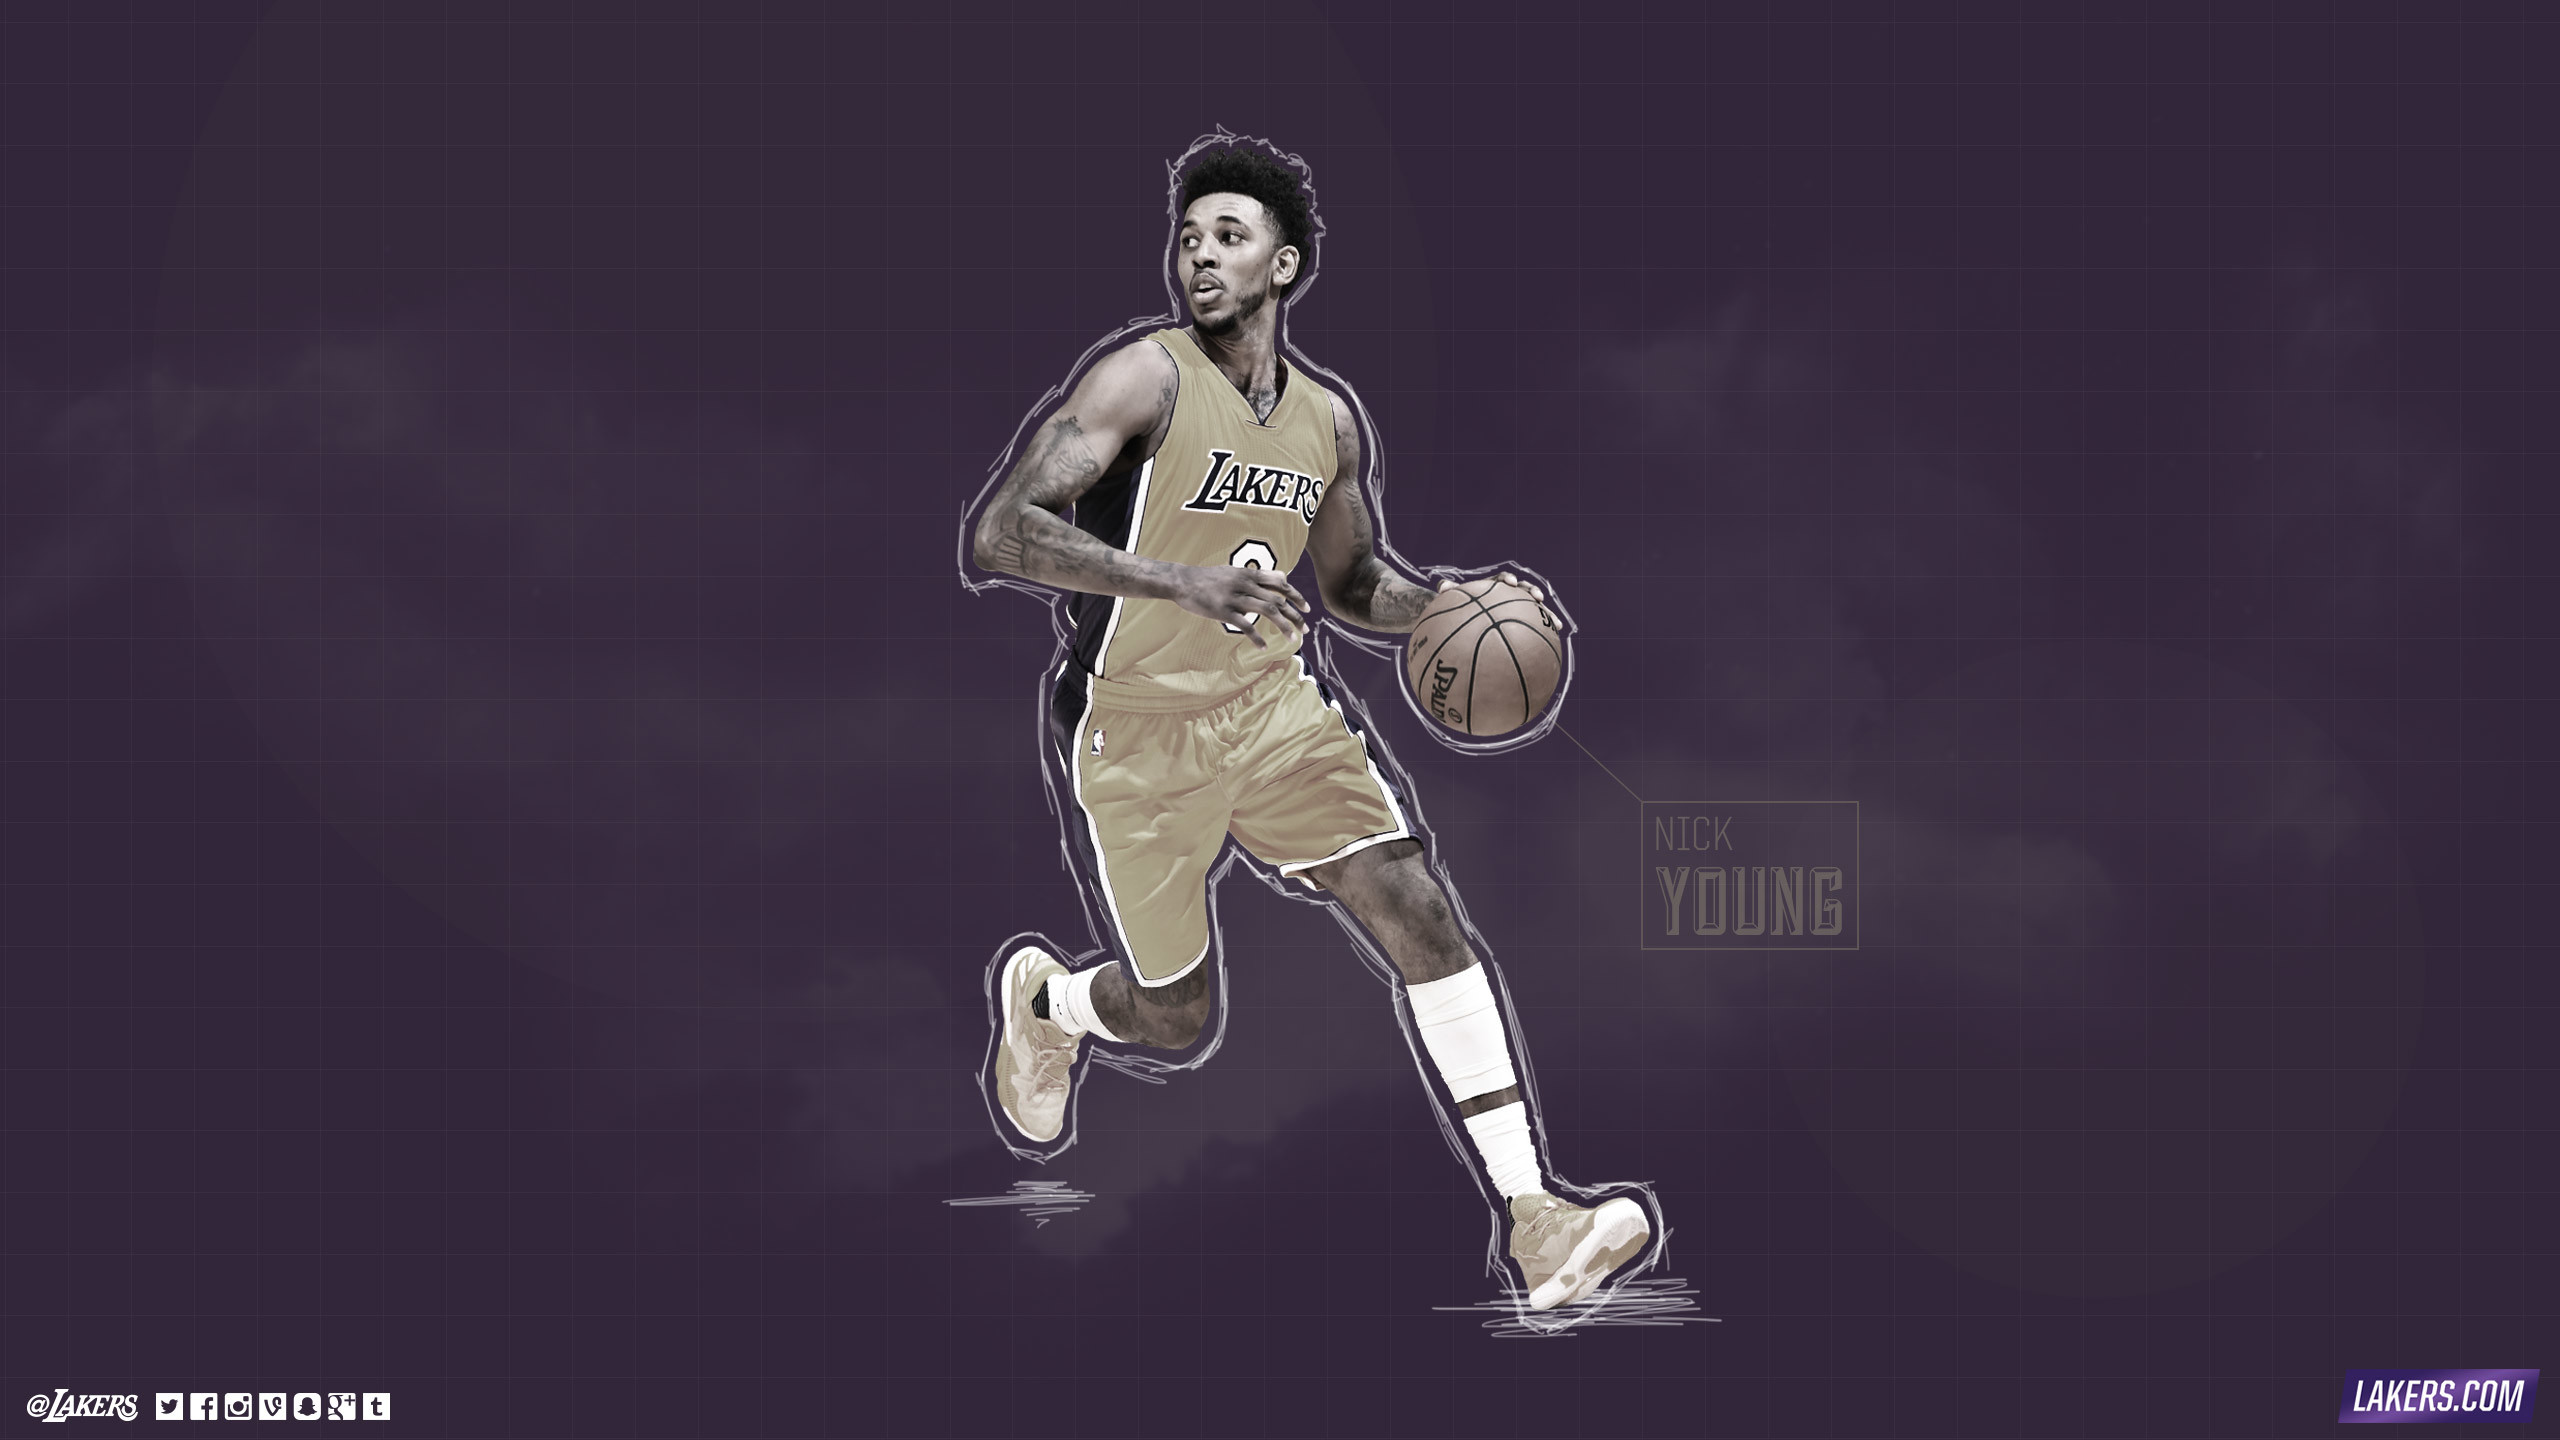 2560x1440 Nick Young Player Wallpaper